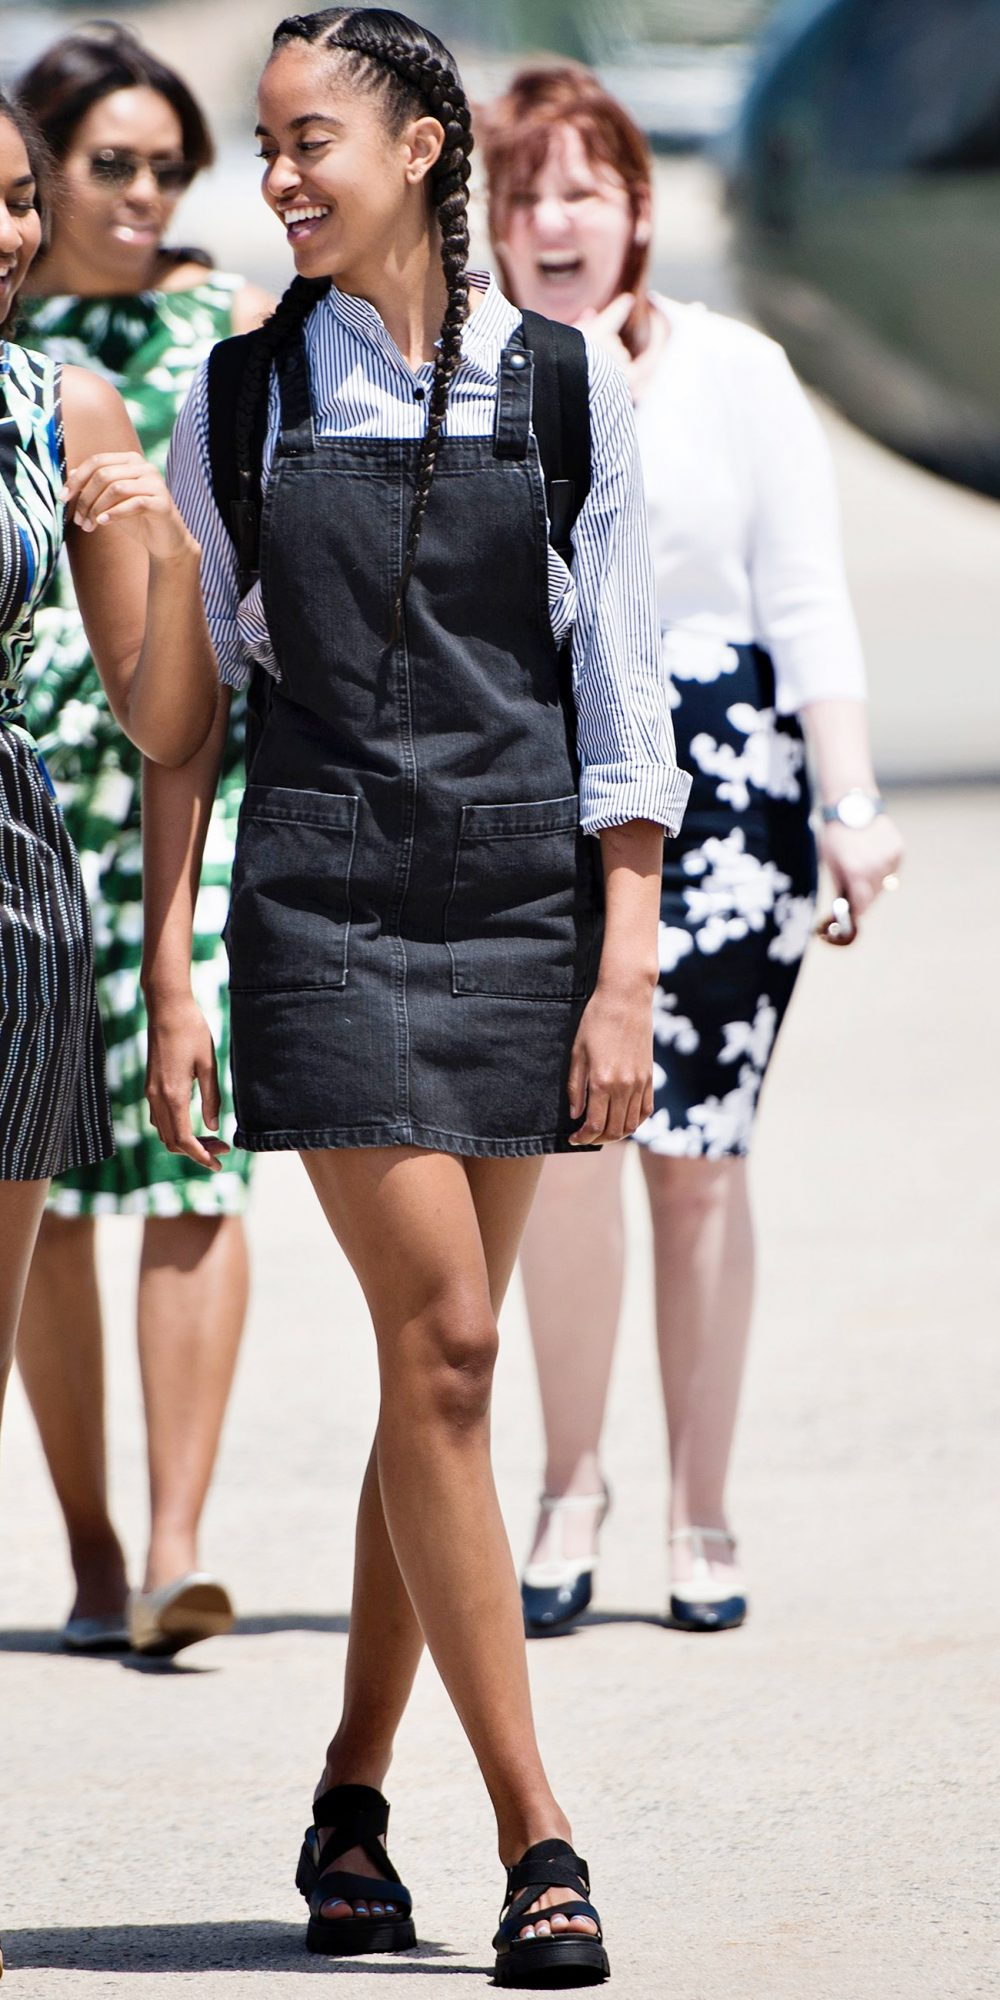 Take A Look At Malia Obama S Incredible Style Evolution